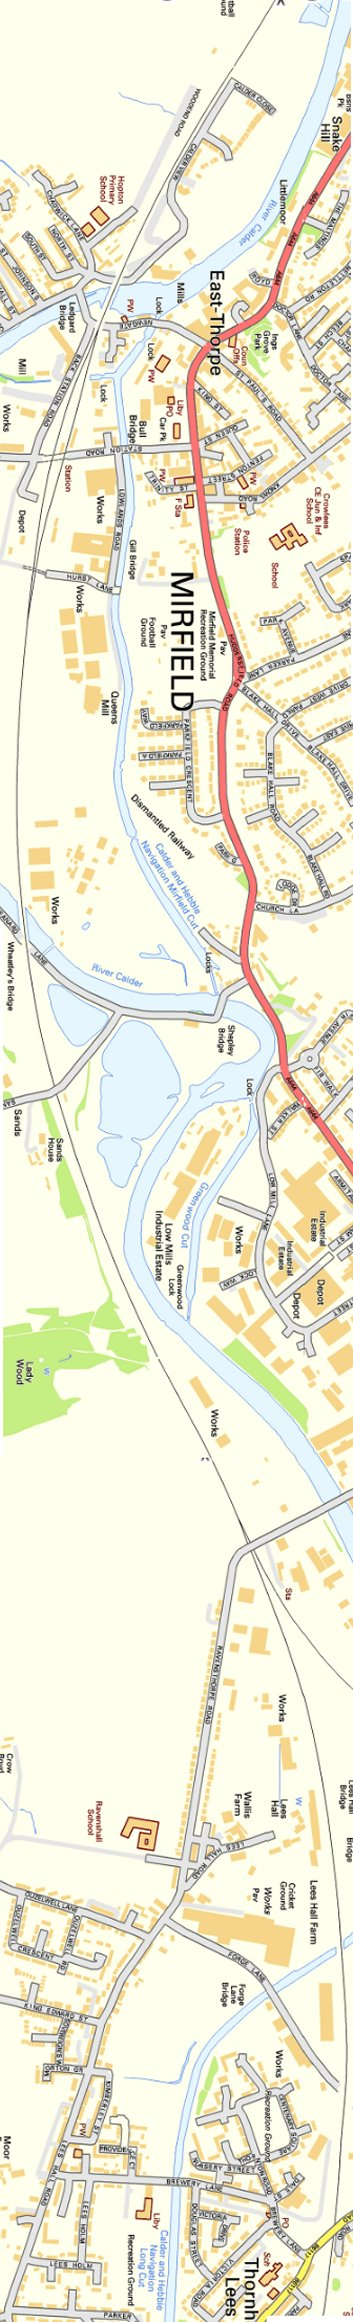 Section from Ordnance Survey OpenSource mapping 2013 showing L&YR railway line from Mirfield to Dewsbury